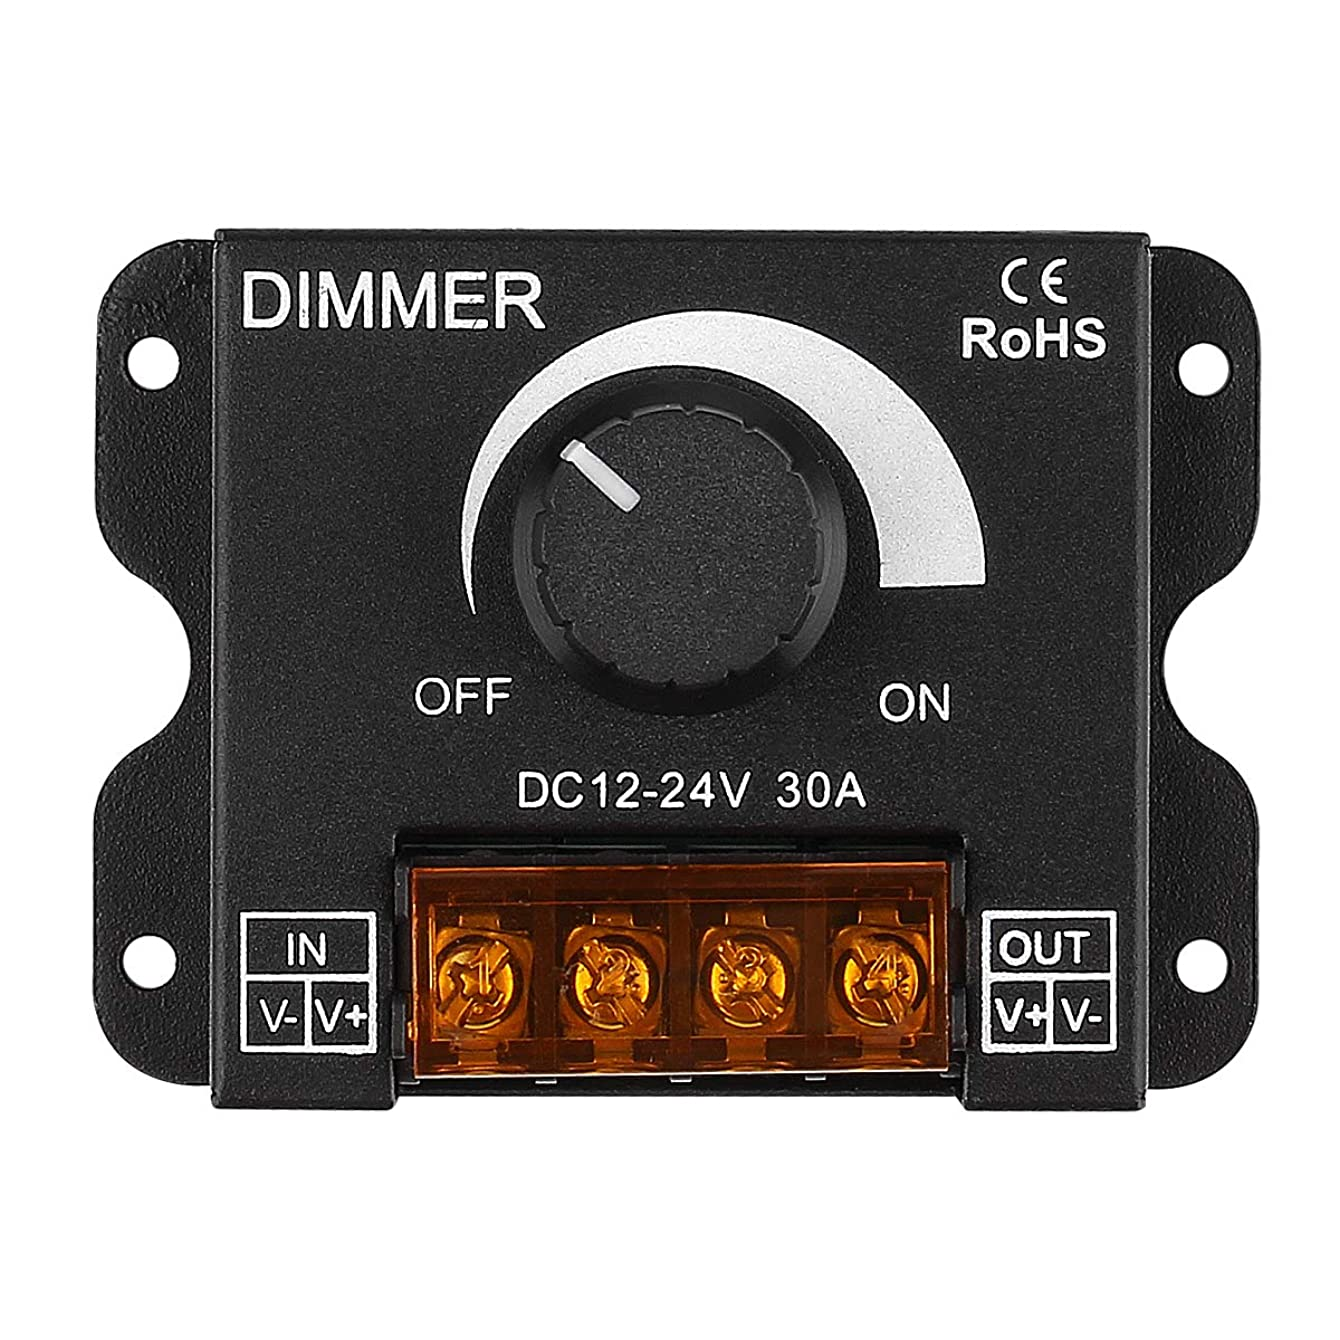 SUPERNIGHT LED Light Strip Dimmer, DC 12V-24V 30A PWM Dimming Controller for Dimmer Knob Adjust Brightness ON/Off Switch with Aluminum Housing